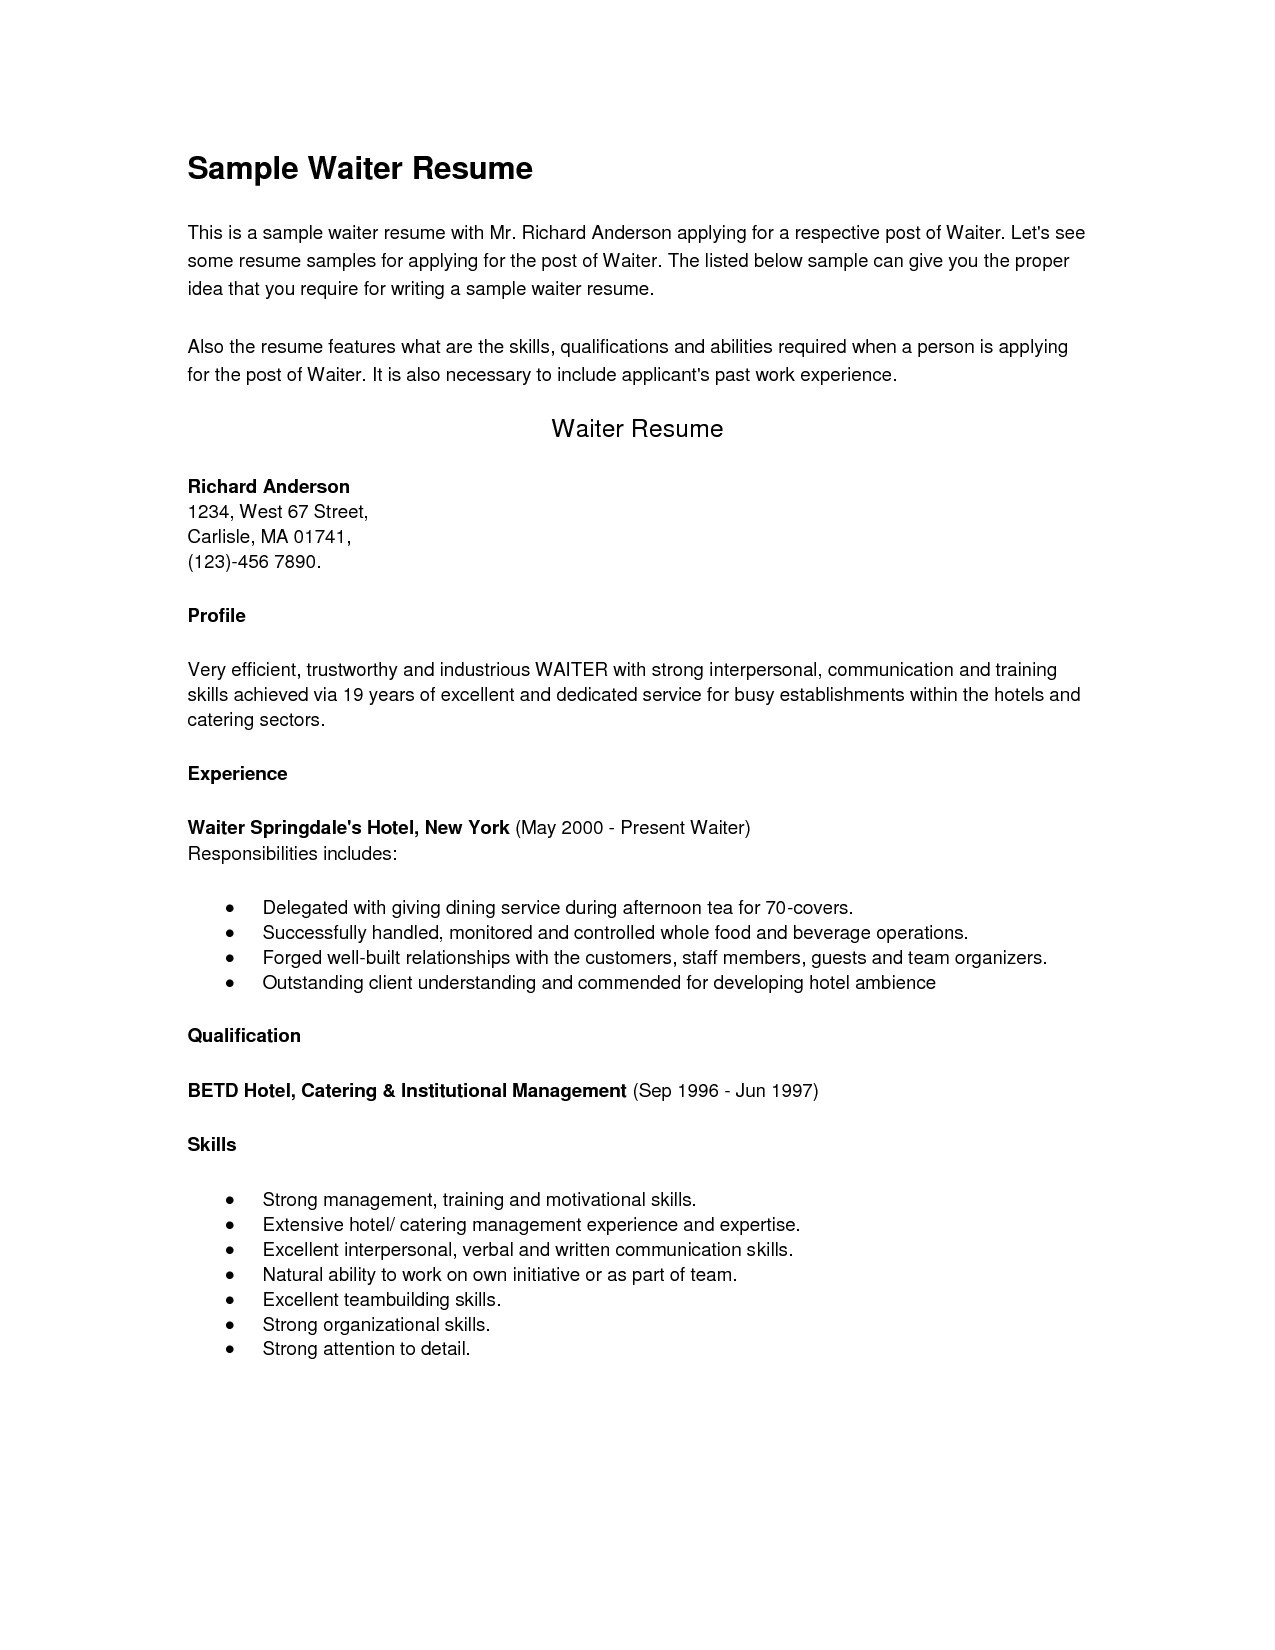 Lpn Nursing Resume Template - Job Skills for Resume Beautiful Awesome Lpn Skills for Resume